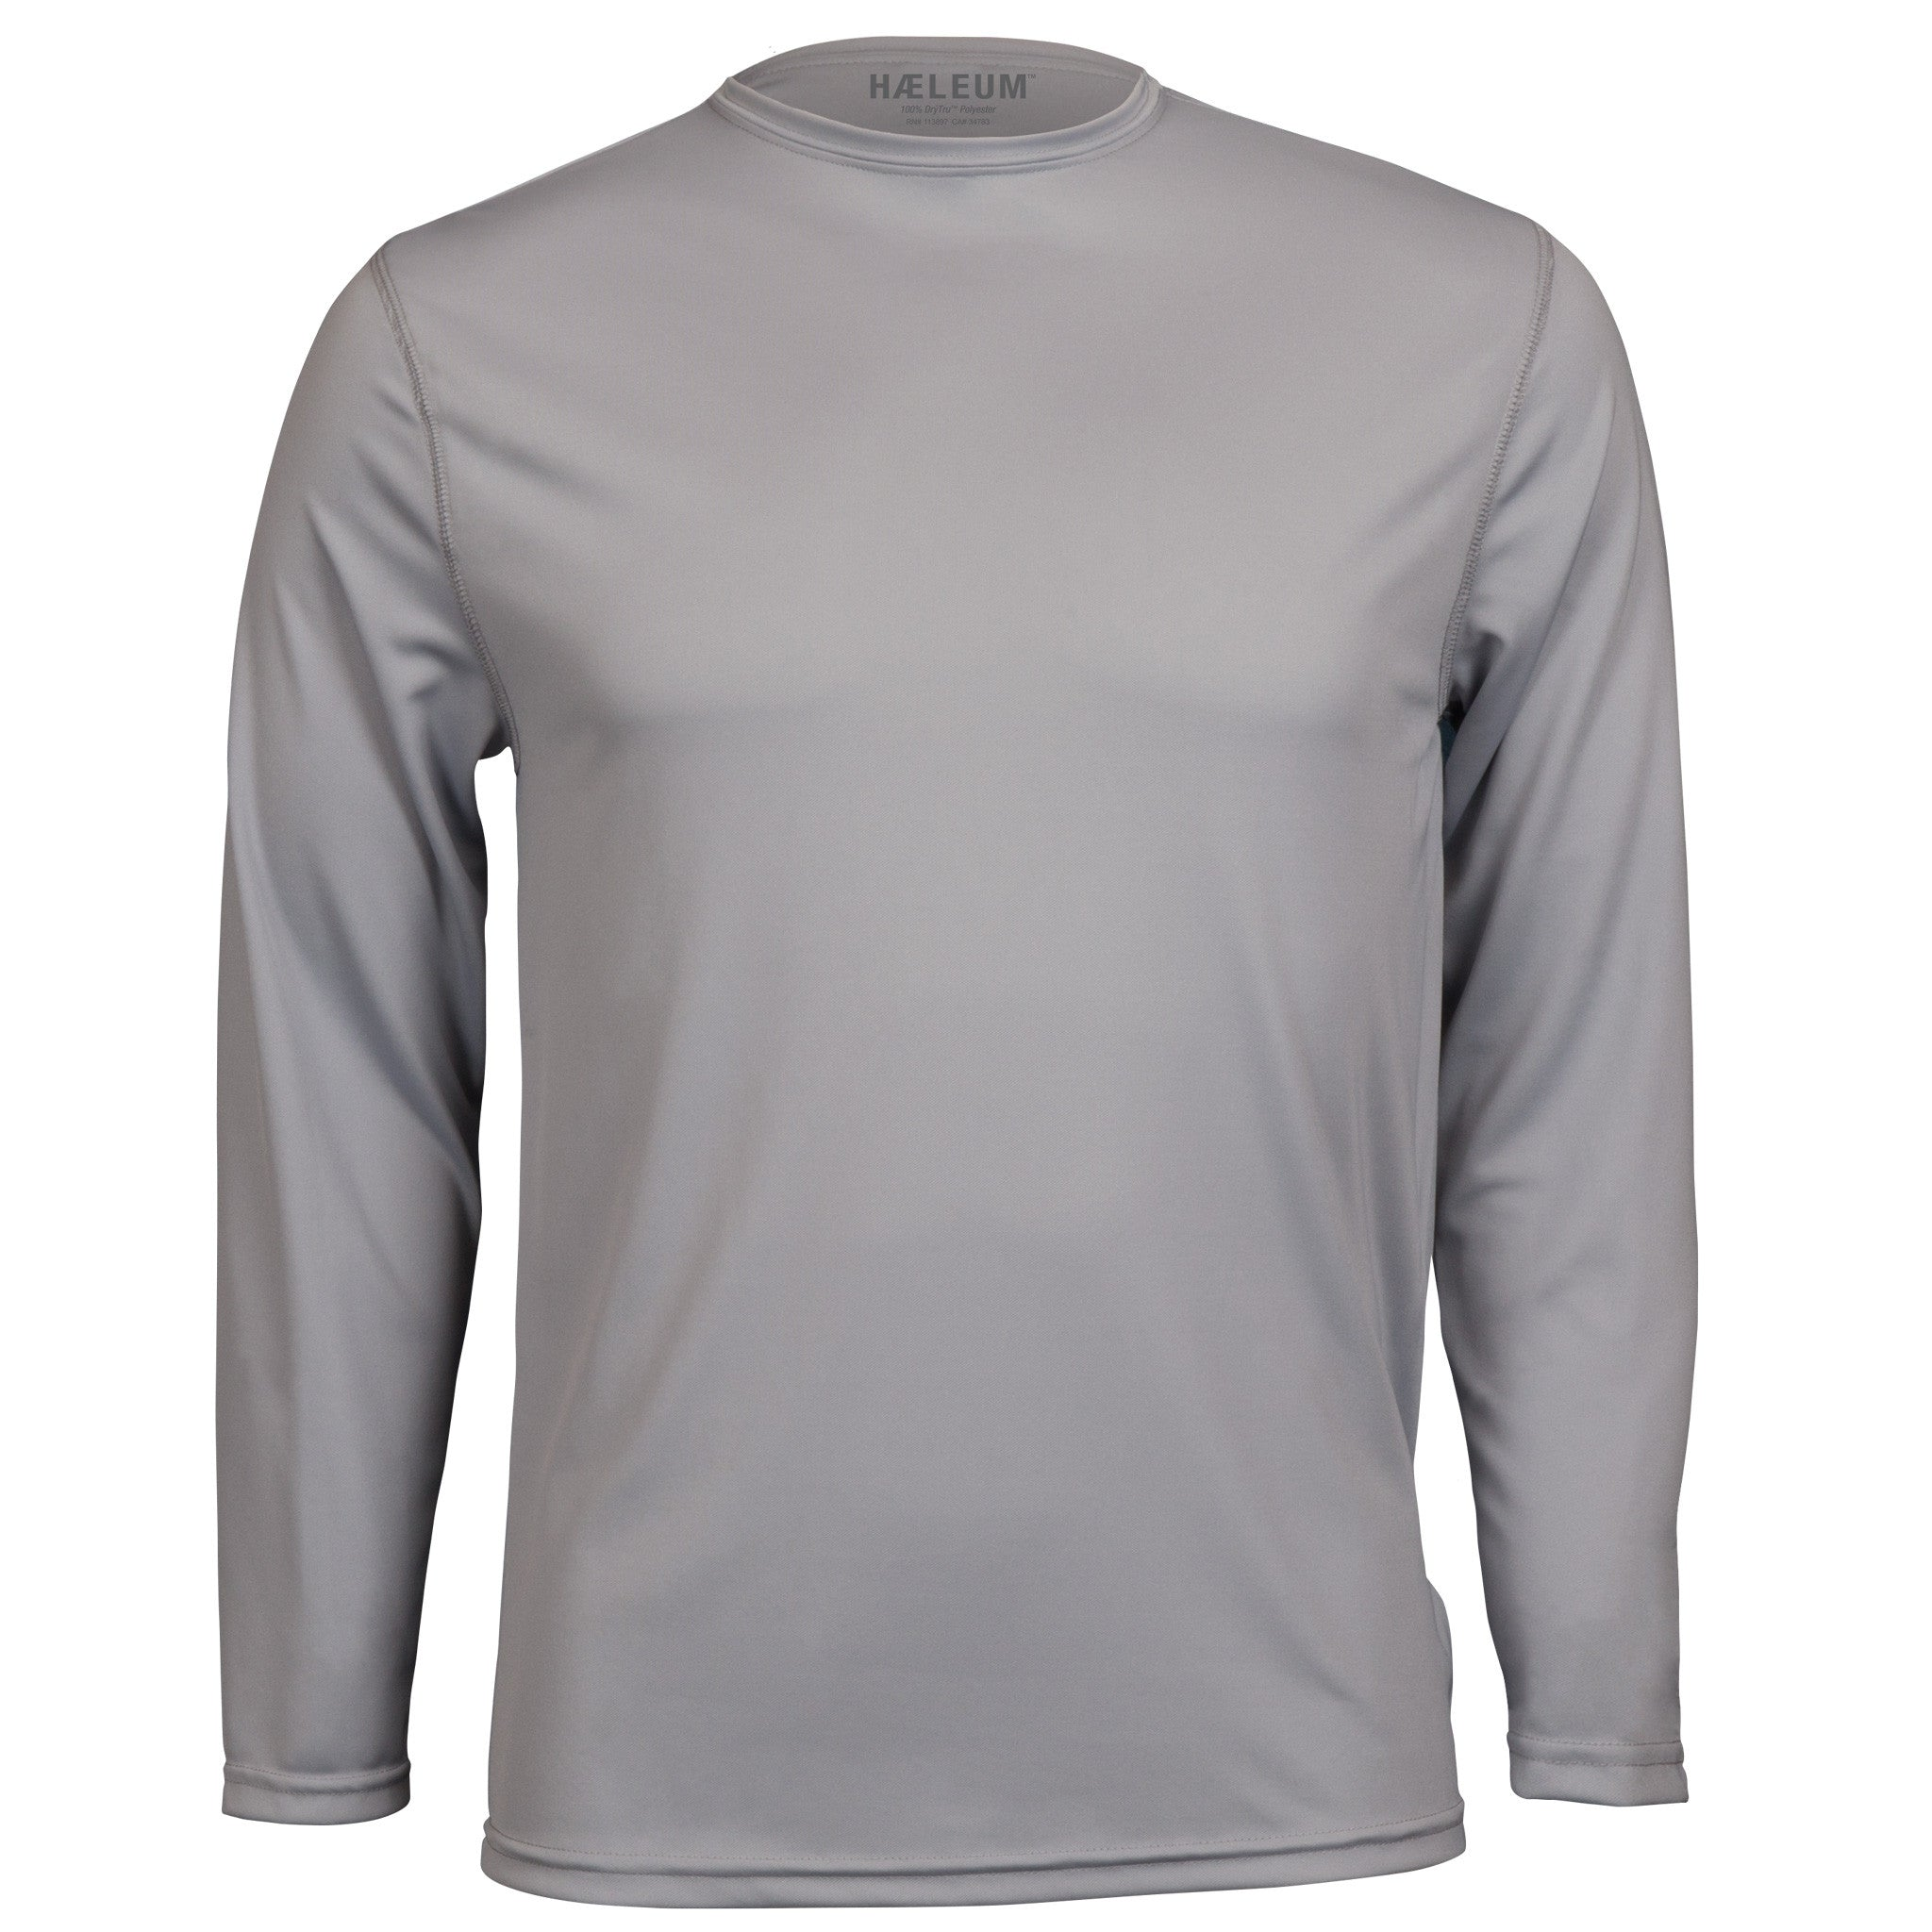 250cdf0e insect repellent shirt, moisture wicking, long sleeve, gray with large  vertical imprint on ...